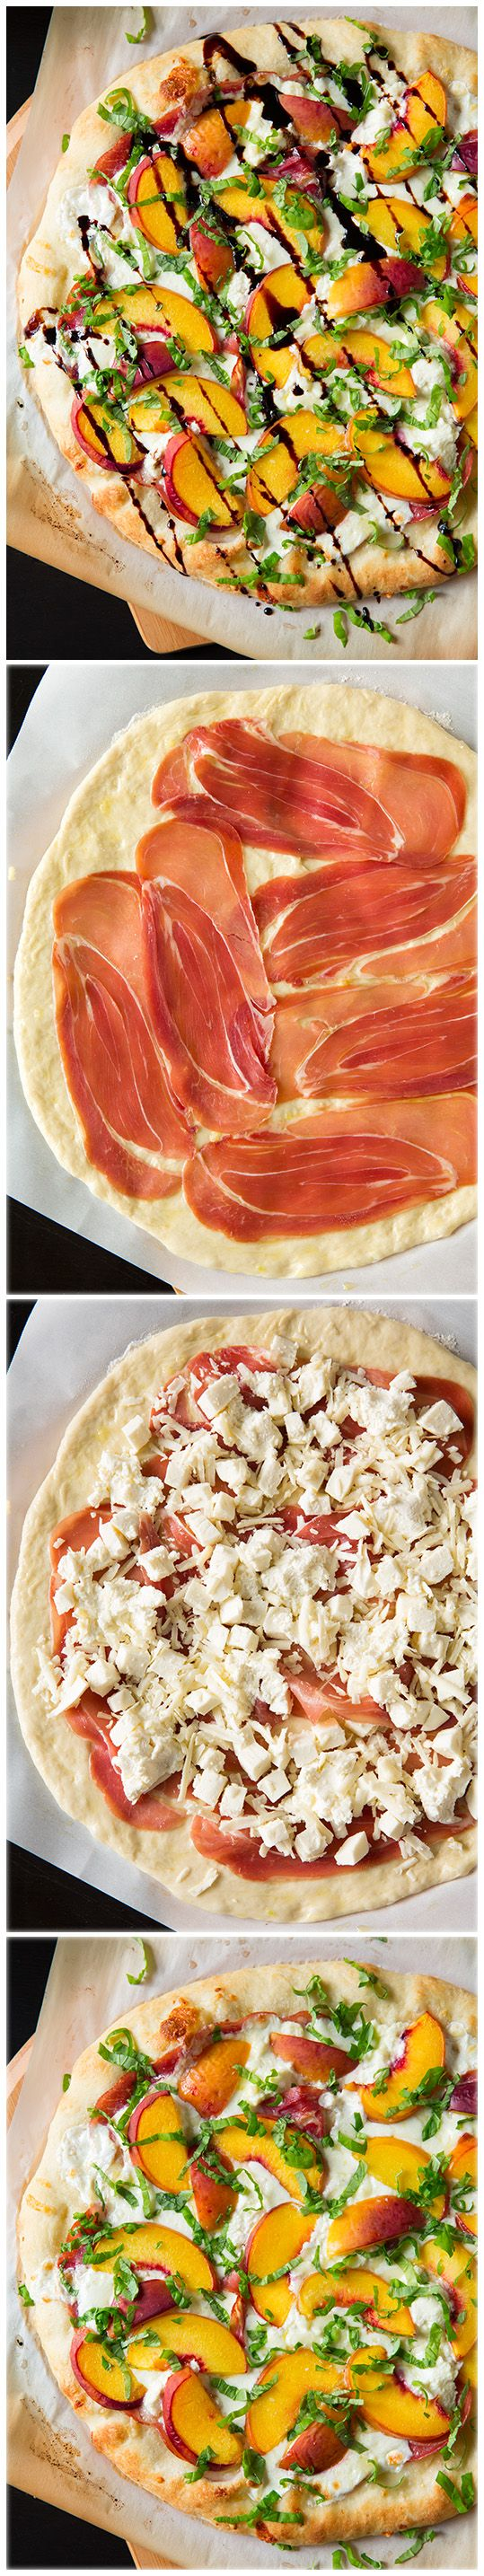 Three Cheese Peach and Prosciutto Pizza with Basil and Honey Balsamic Reduction - it's AMAZING!! A summer must try pizza for sure!